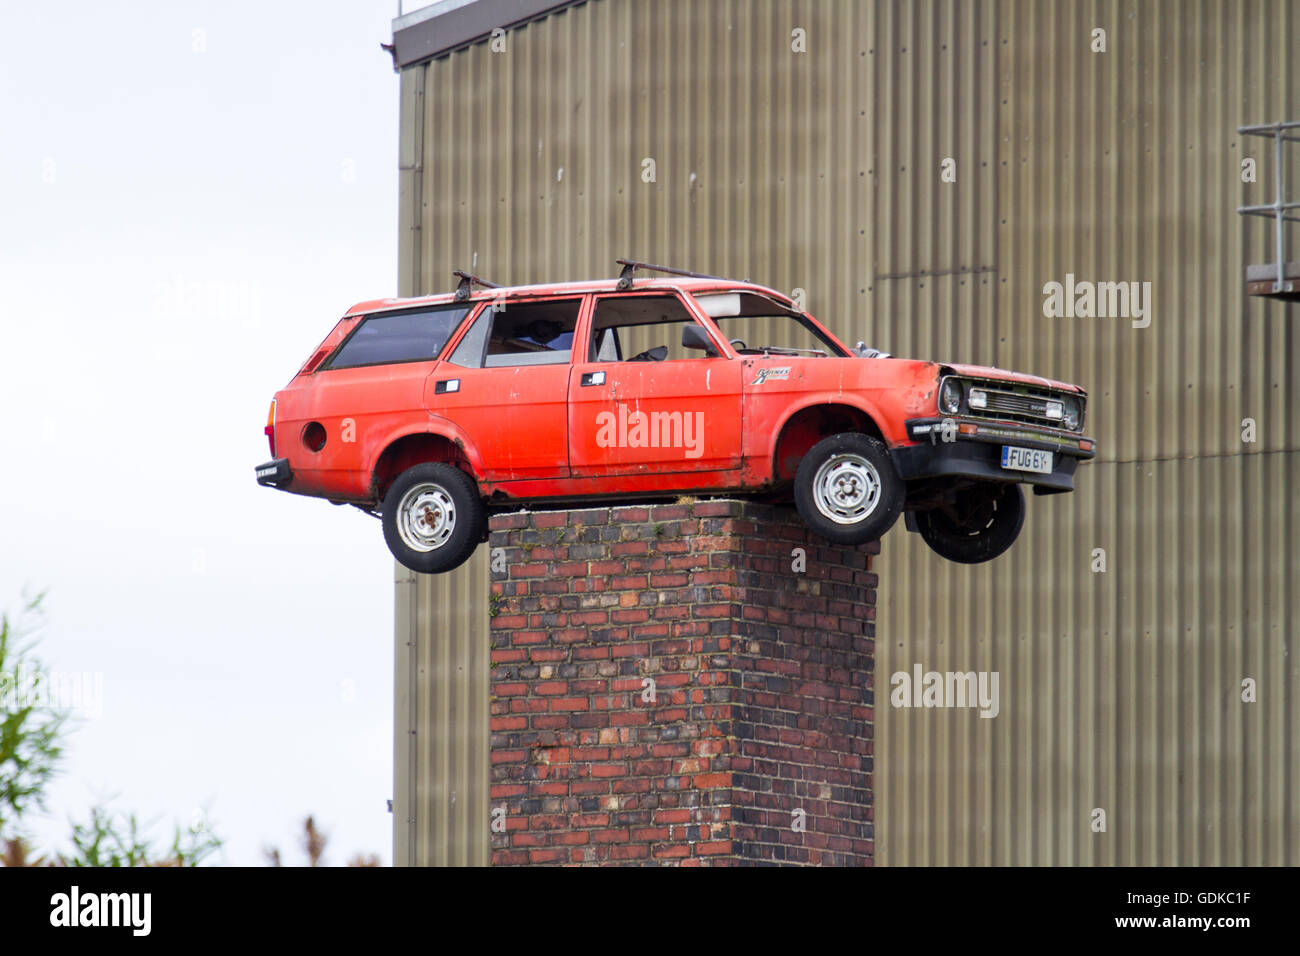 Badly Parked Car, Siding Road, Fleetwood, Nr Blackpool - Stock Image